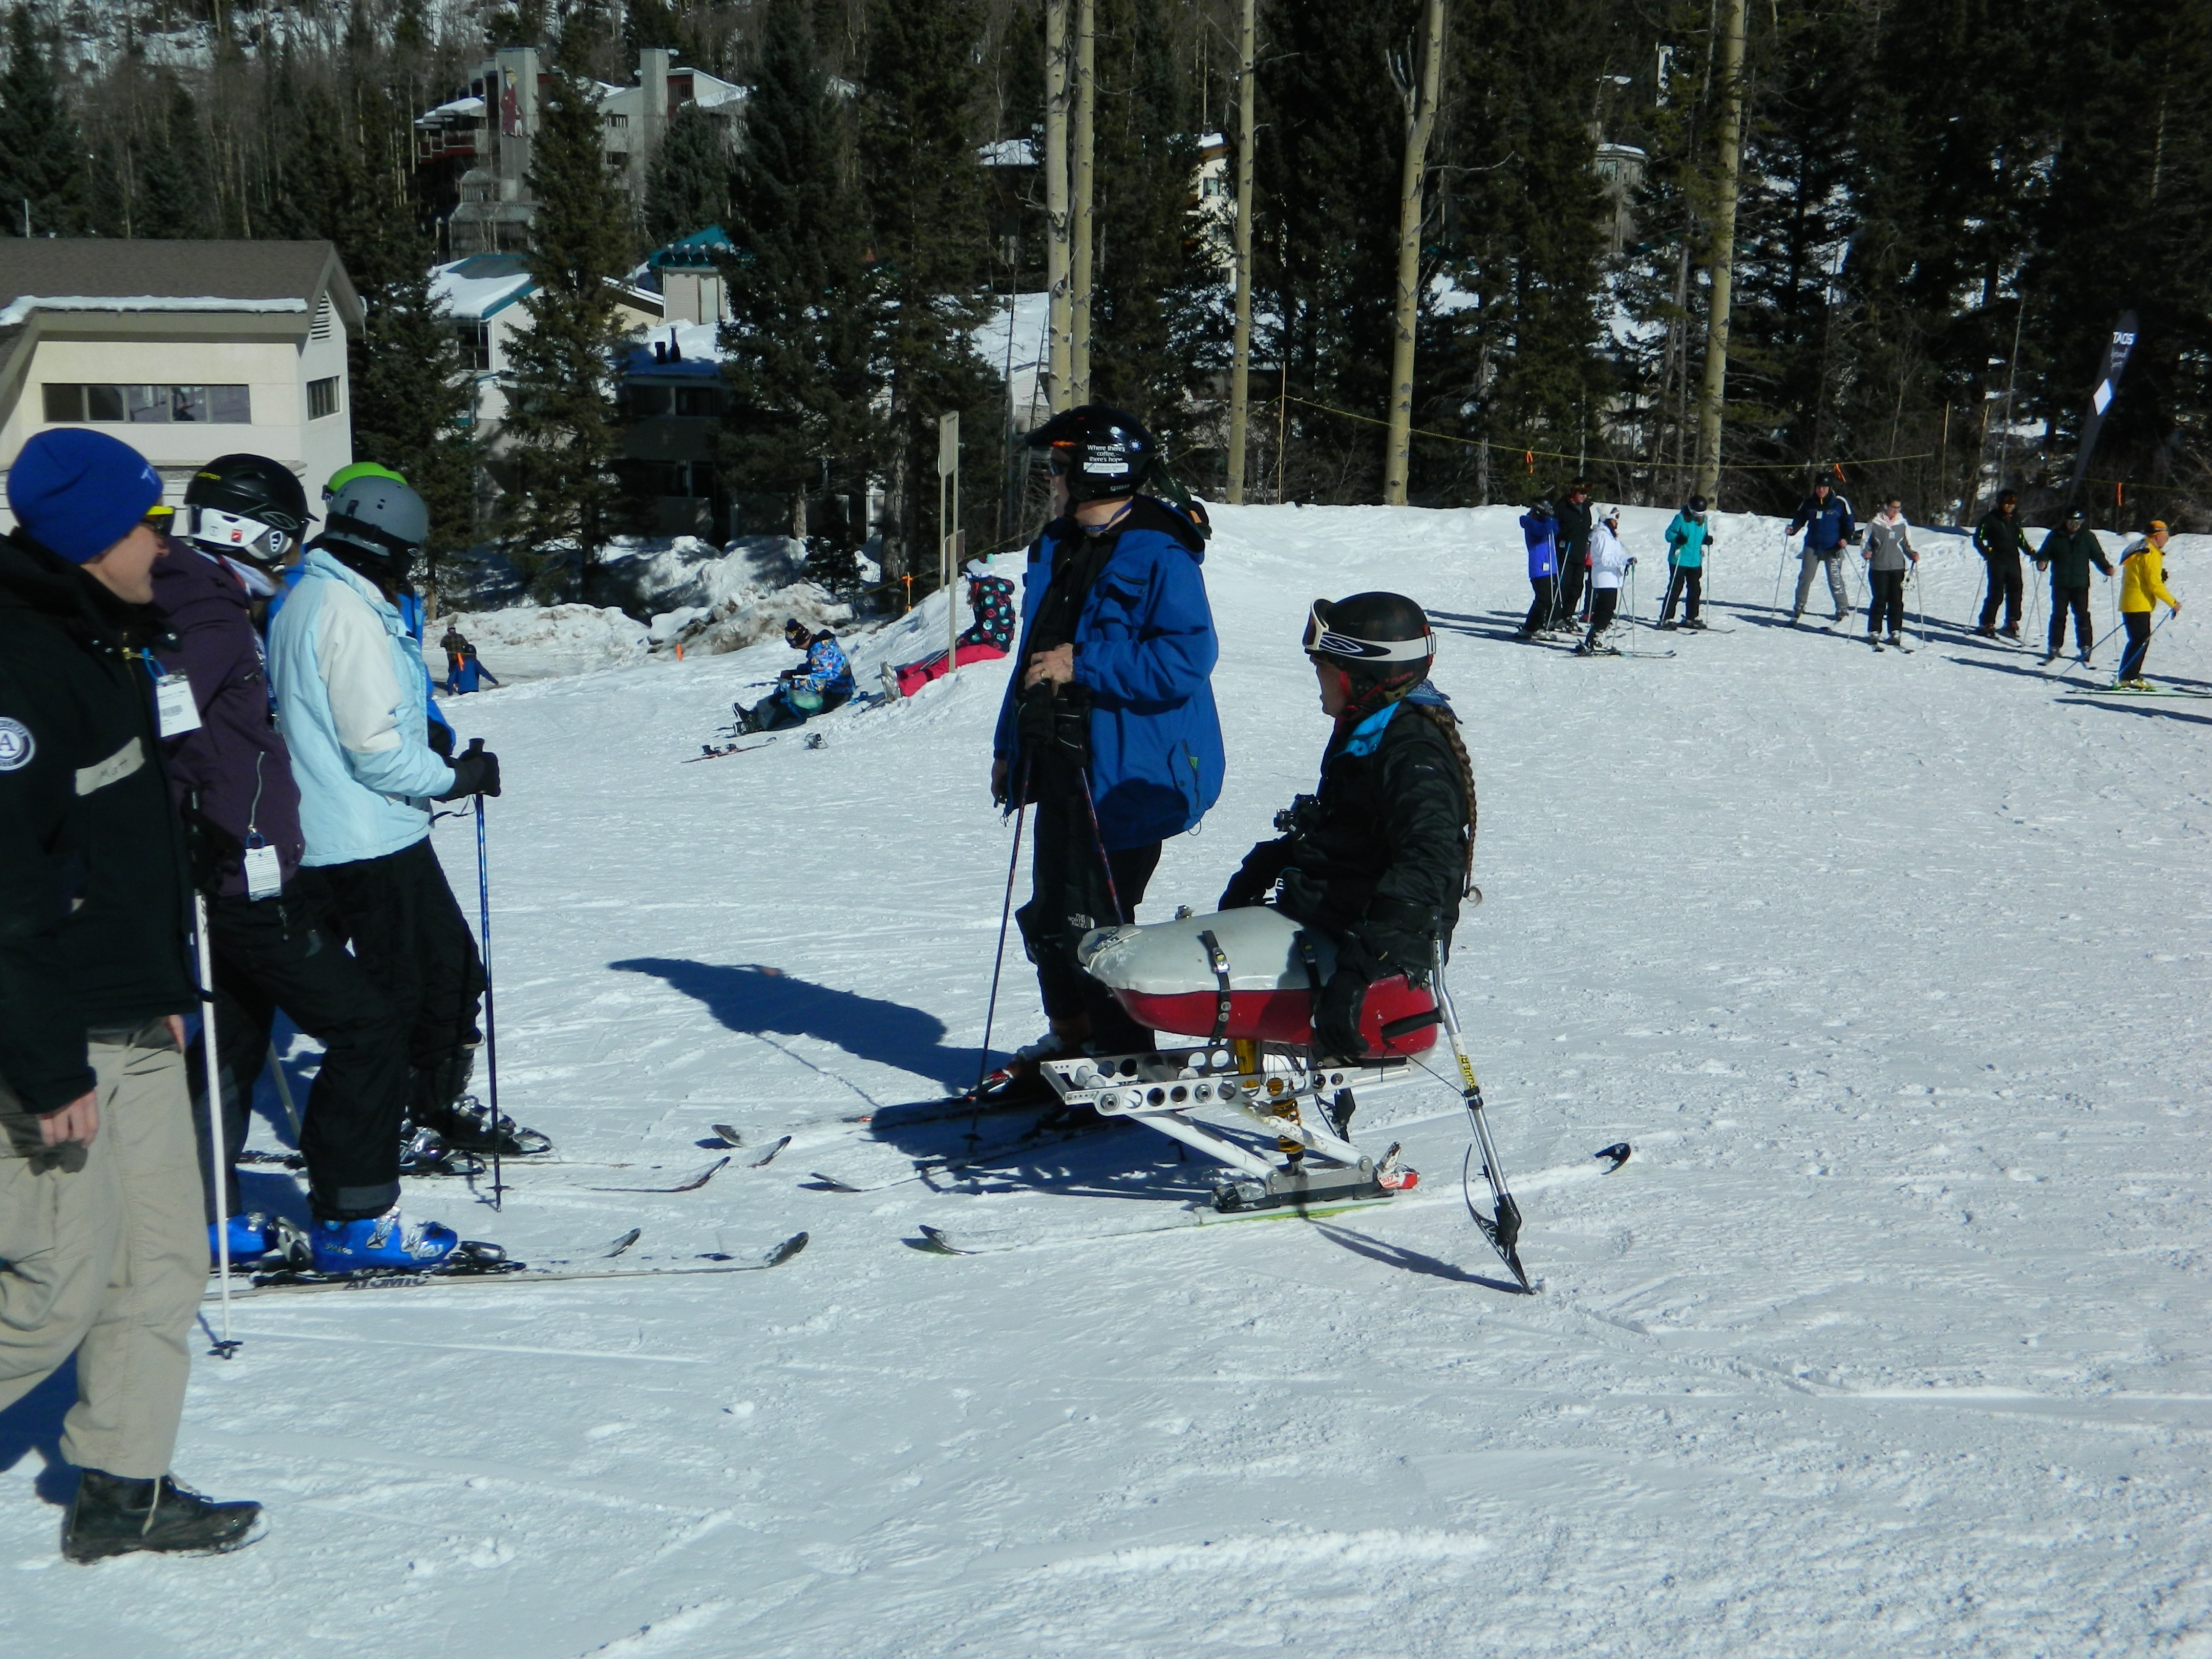 Group of skiers, one disabled, confer on the slopes of Taos Ski Valley. Other skiers behind, and main lodge in the distance.